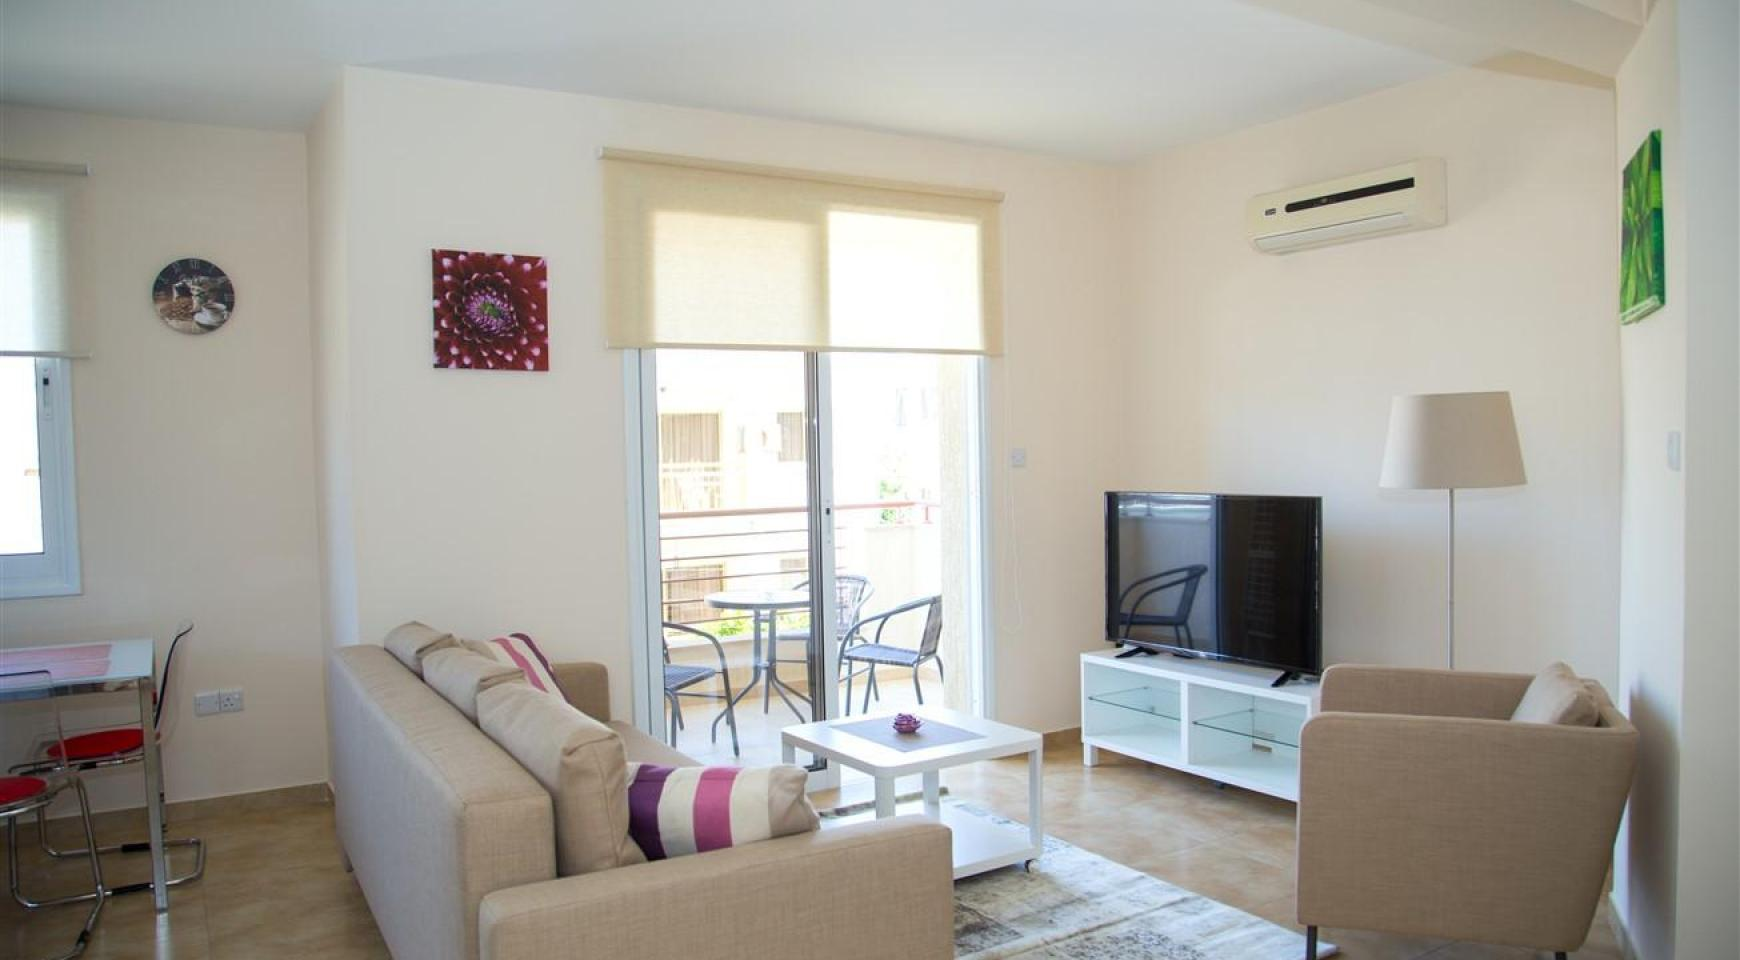 Luxury One Bedroom Apartment Frida 104 in the Tourist Area - 1